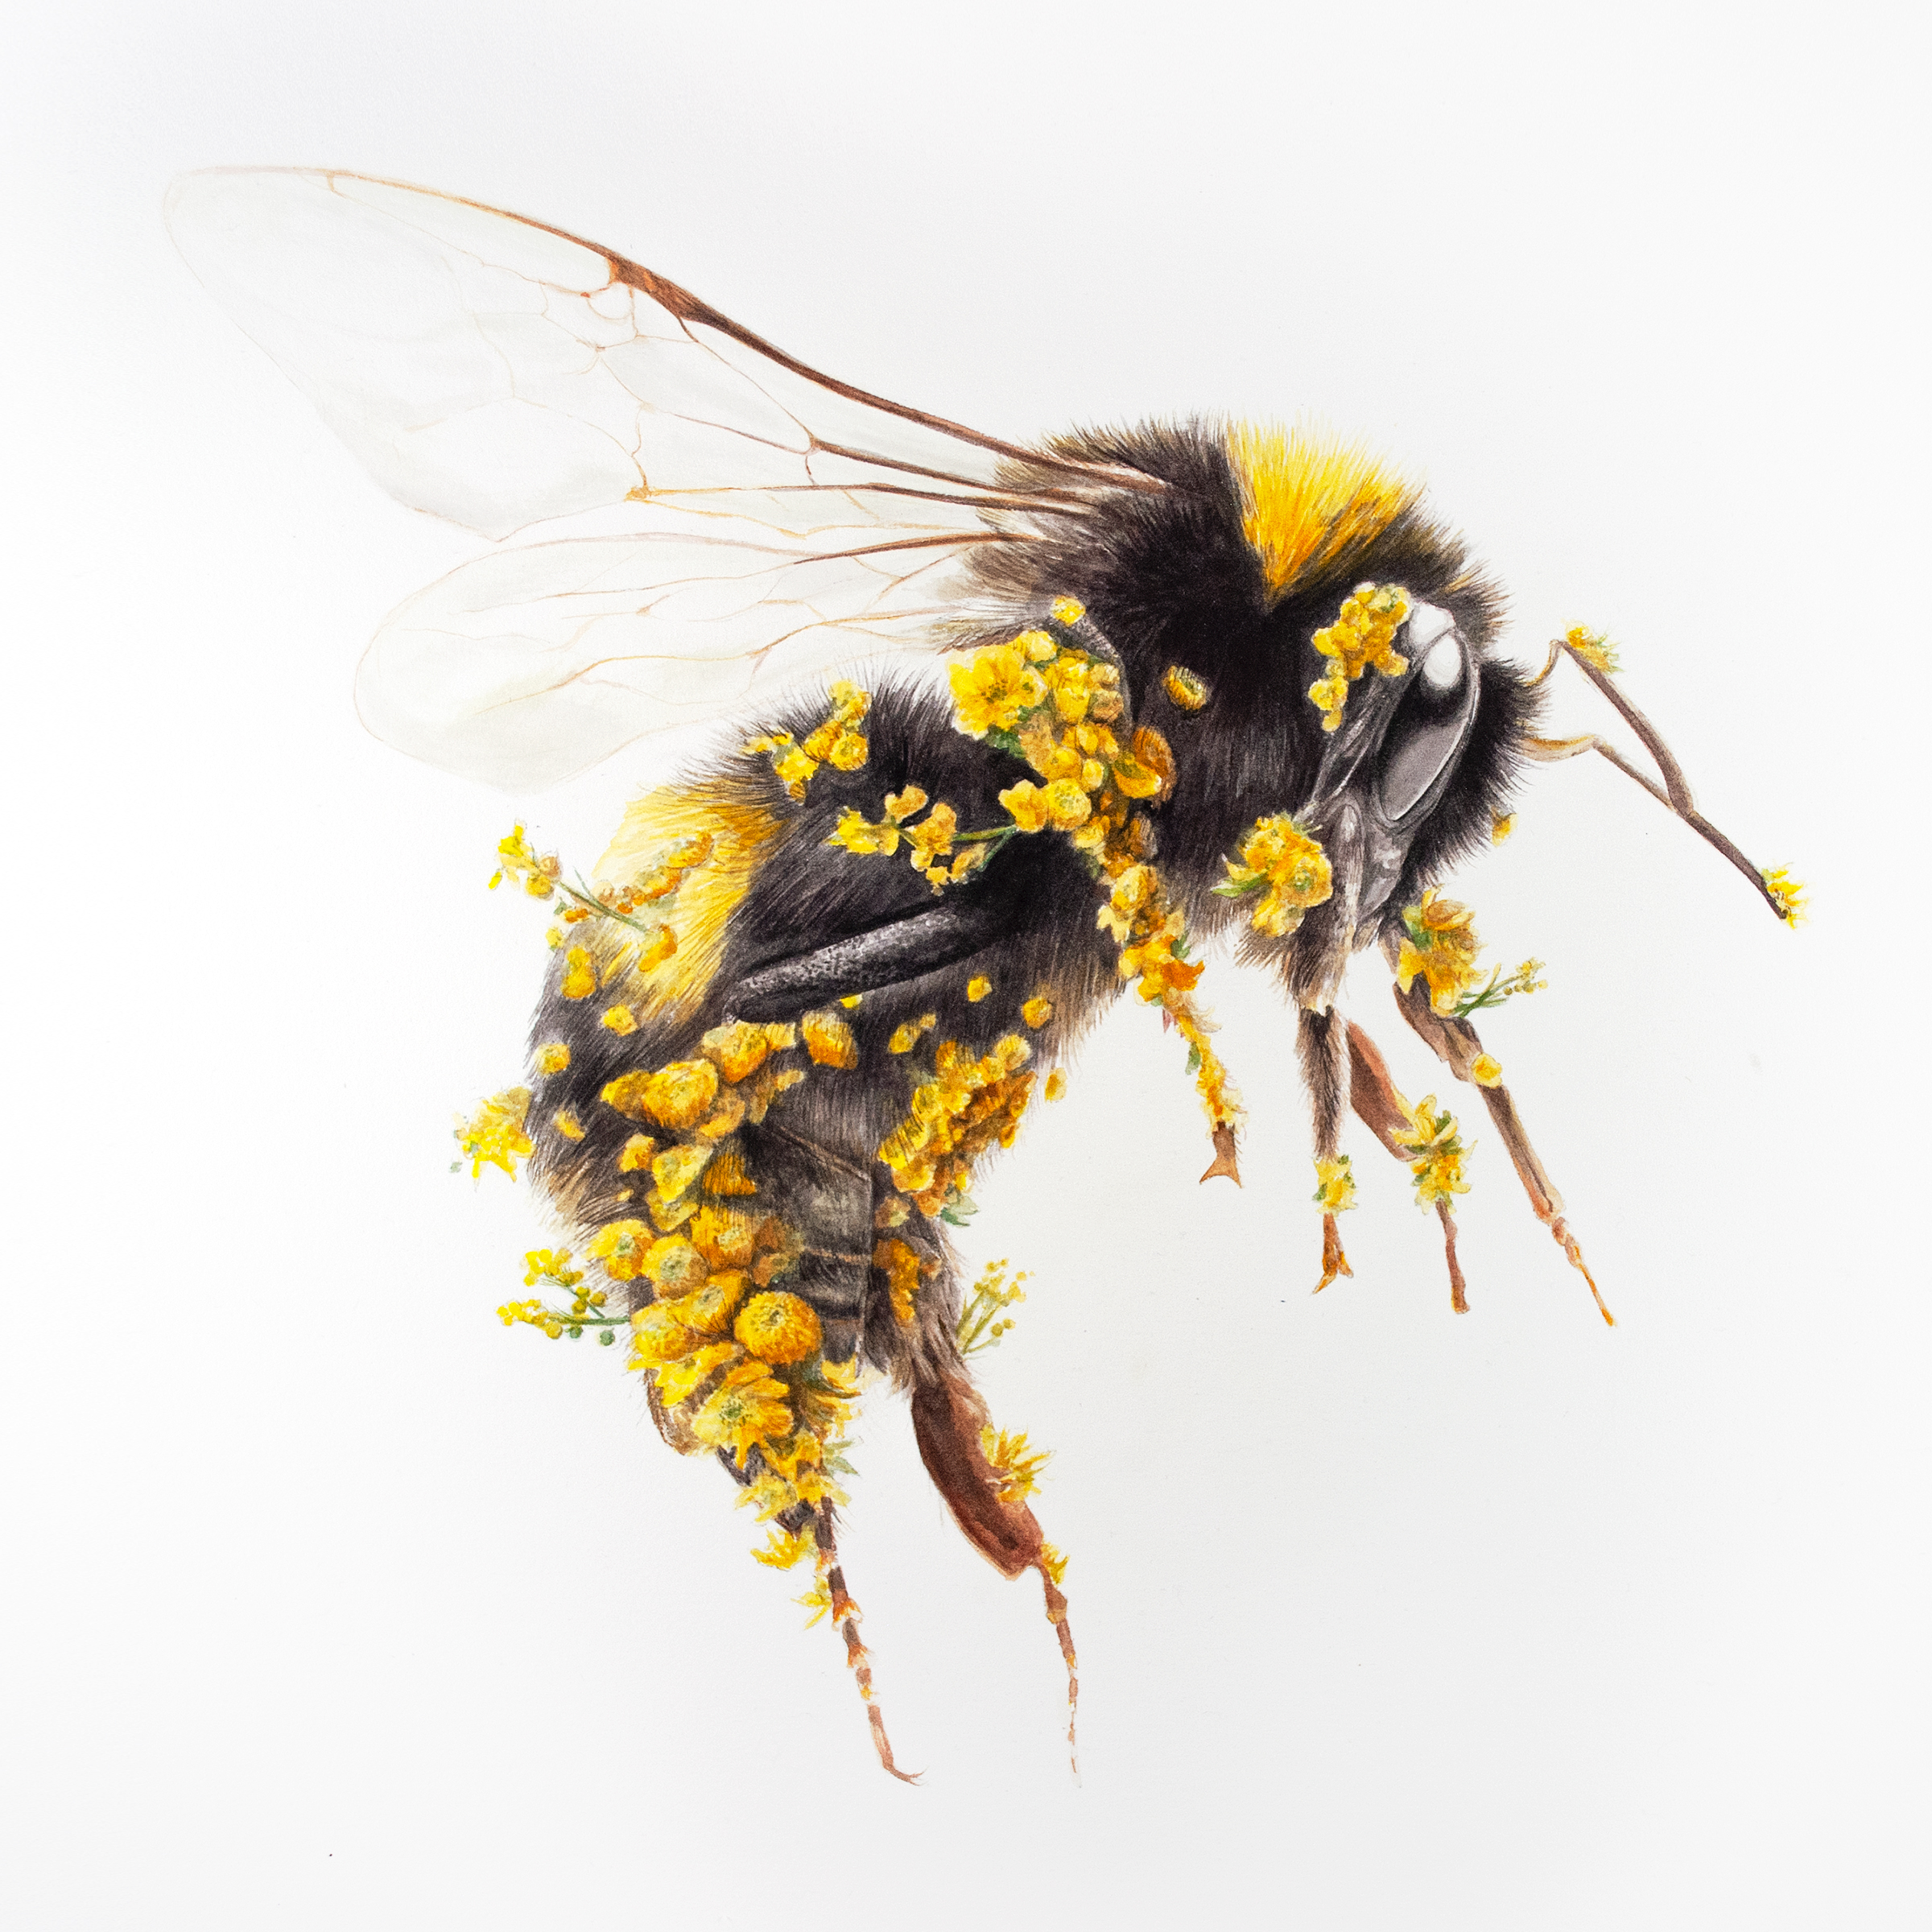 a yellow and black bumblebee covered in yellow flowers similar to the way pollen sticks to the insect's appendages